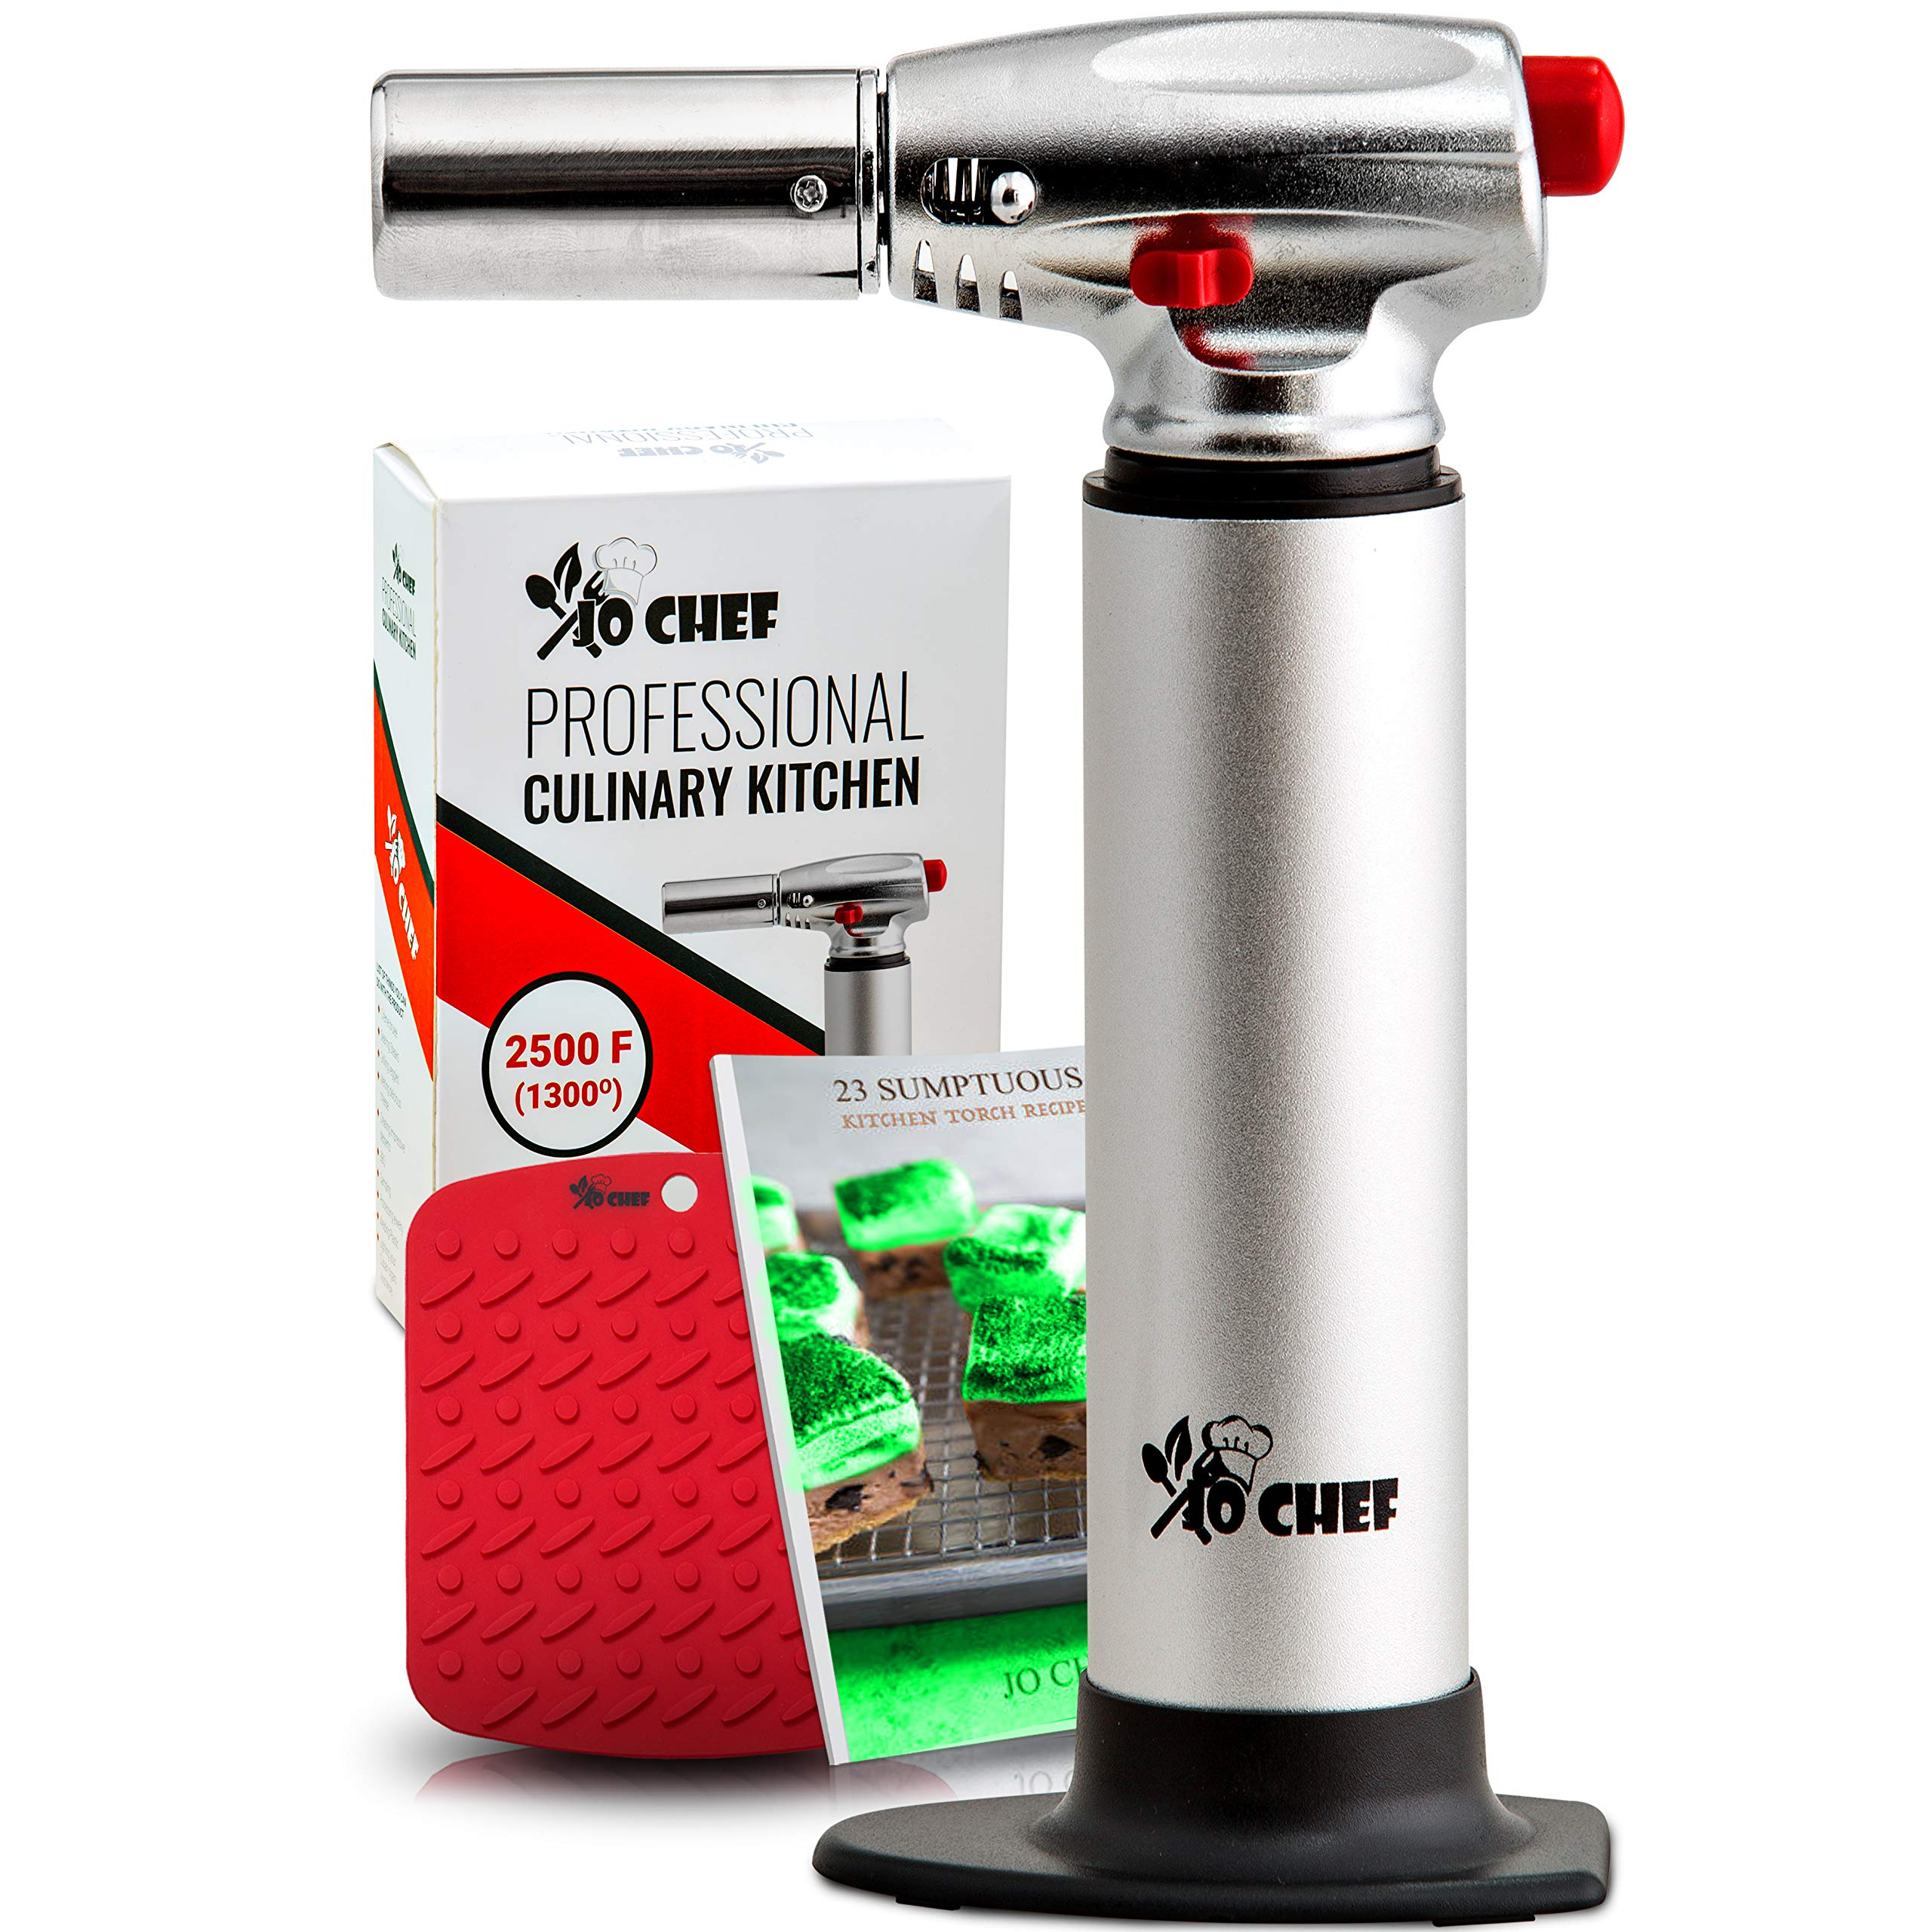 Jo Chef Professional Culinary Torch - Aluminum Refillable Crème Brulee Blow Torch - Butane Torch With Adjustable Flame - Perfect for Cooking, Baking, Crafts, BBQs - FREE Place Mat + Recipe eBook